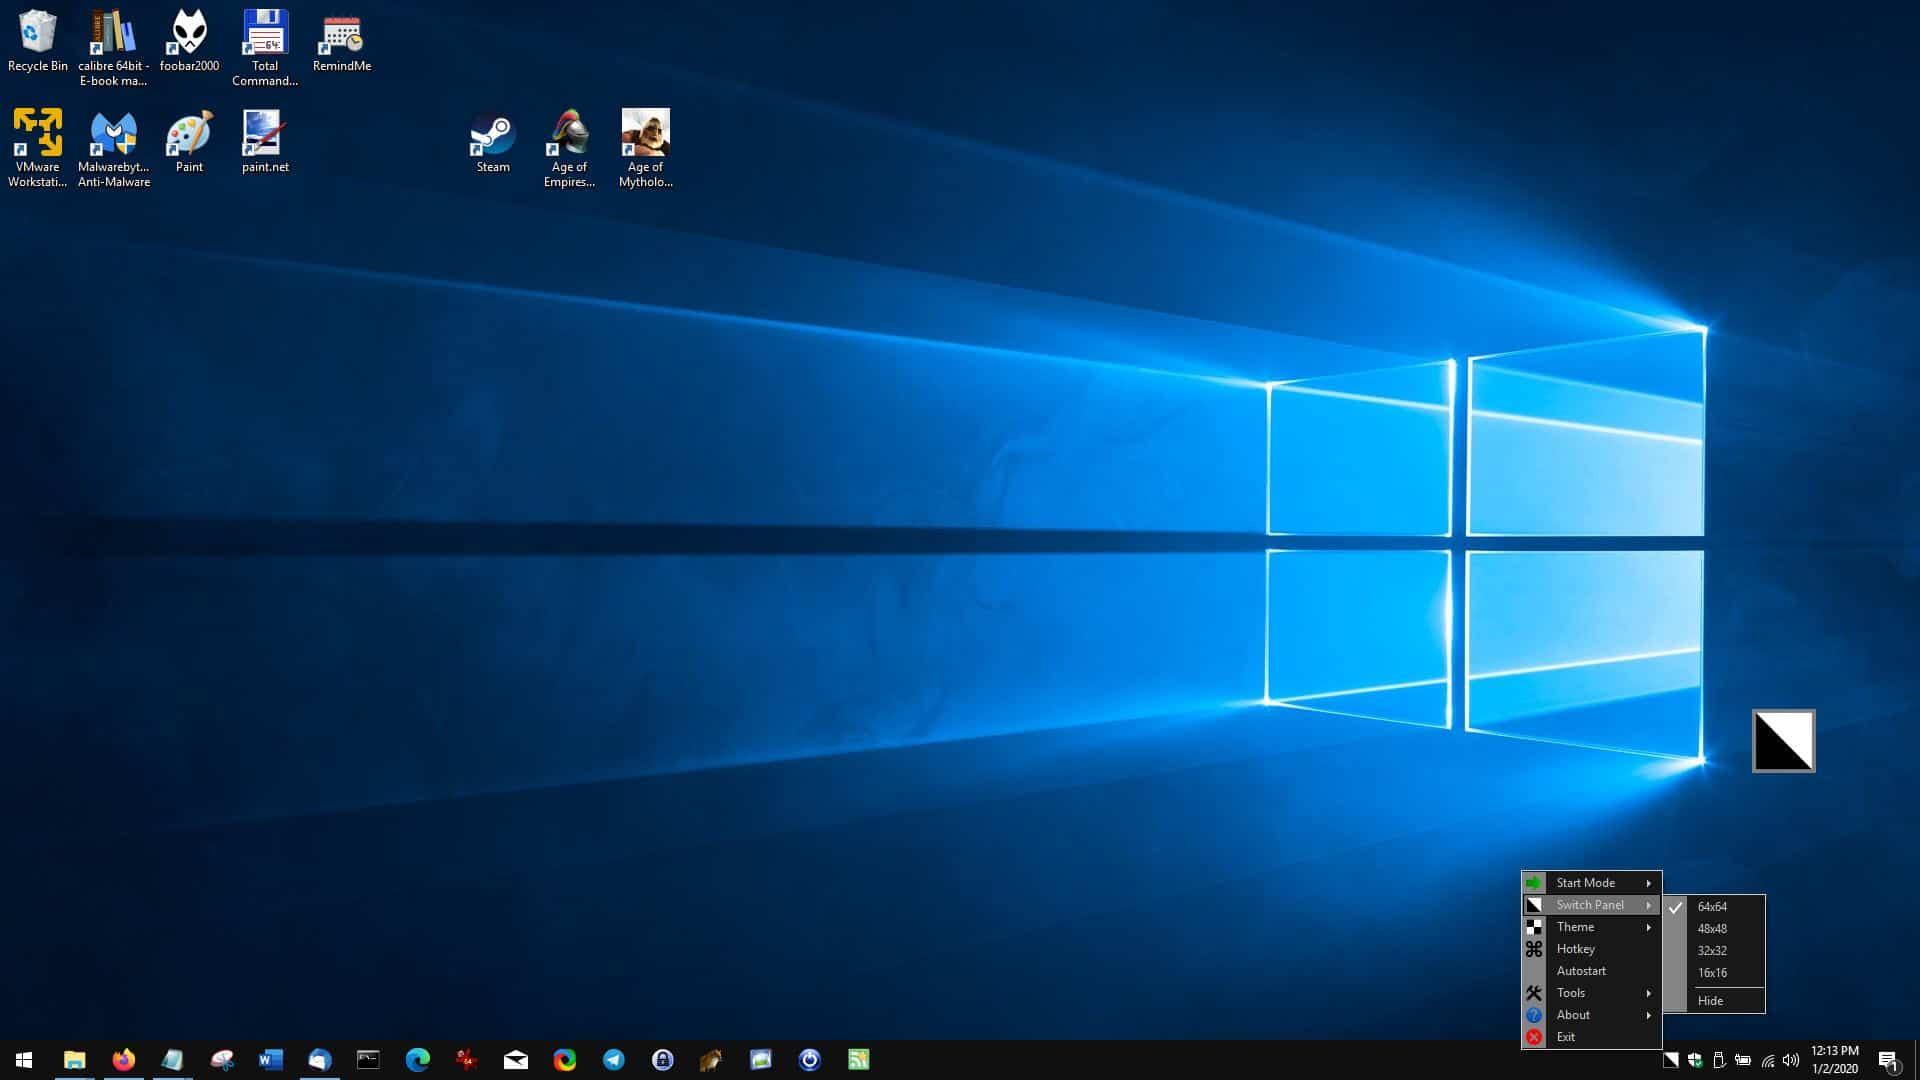 Enable dark theme on Windows 10 with a single click or hotkey using Easy Dark Mode